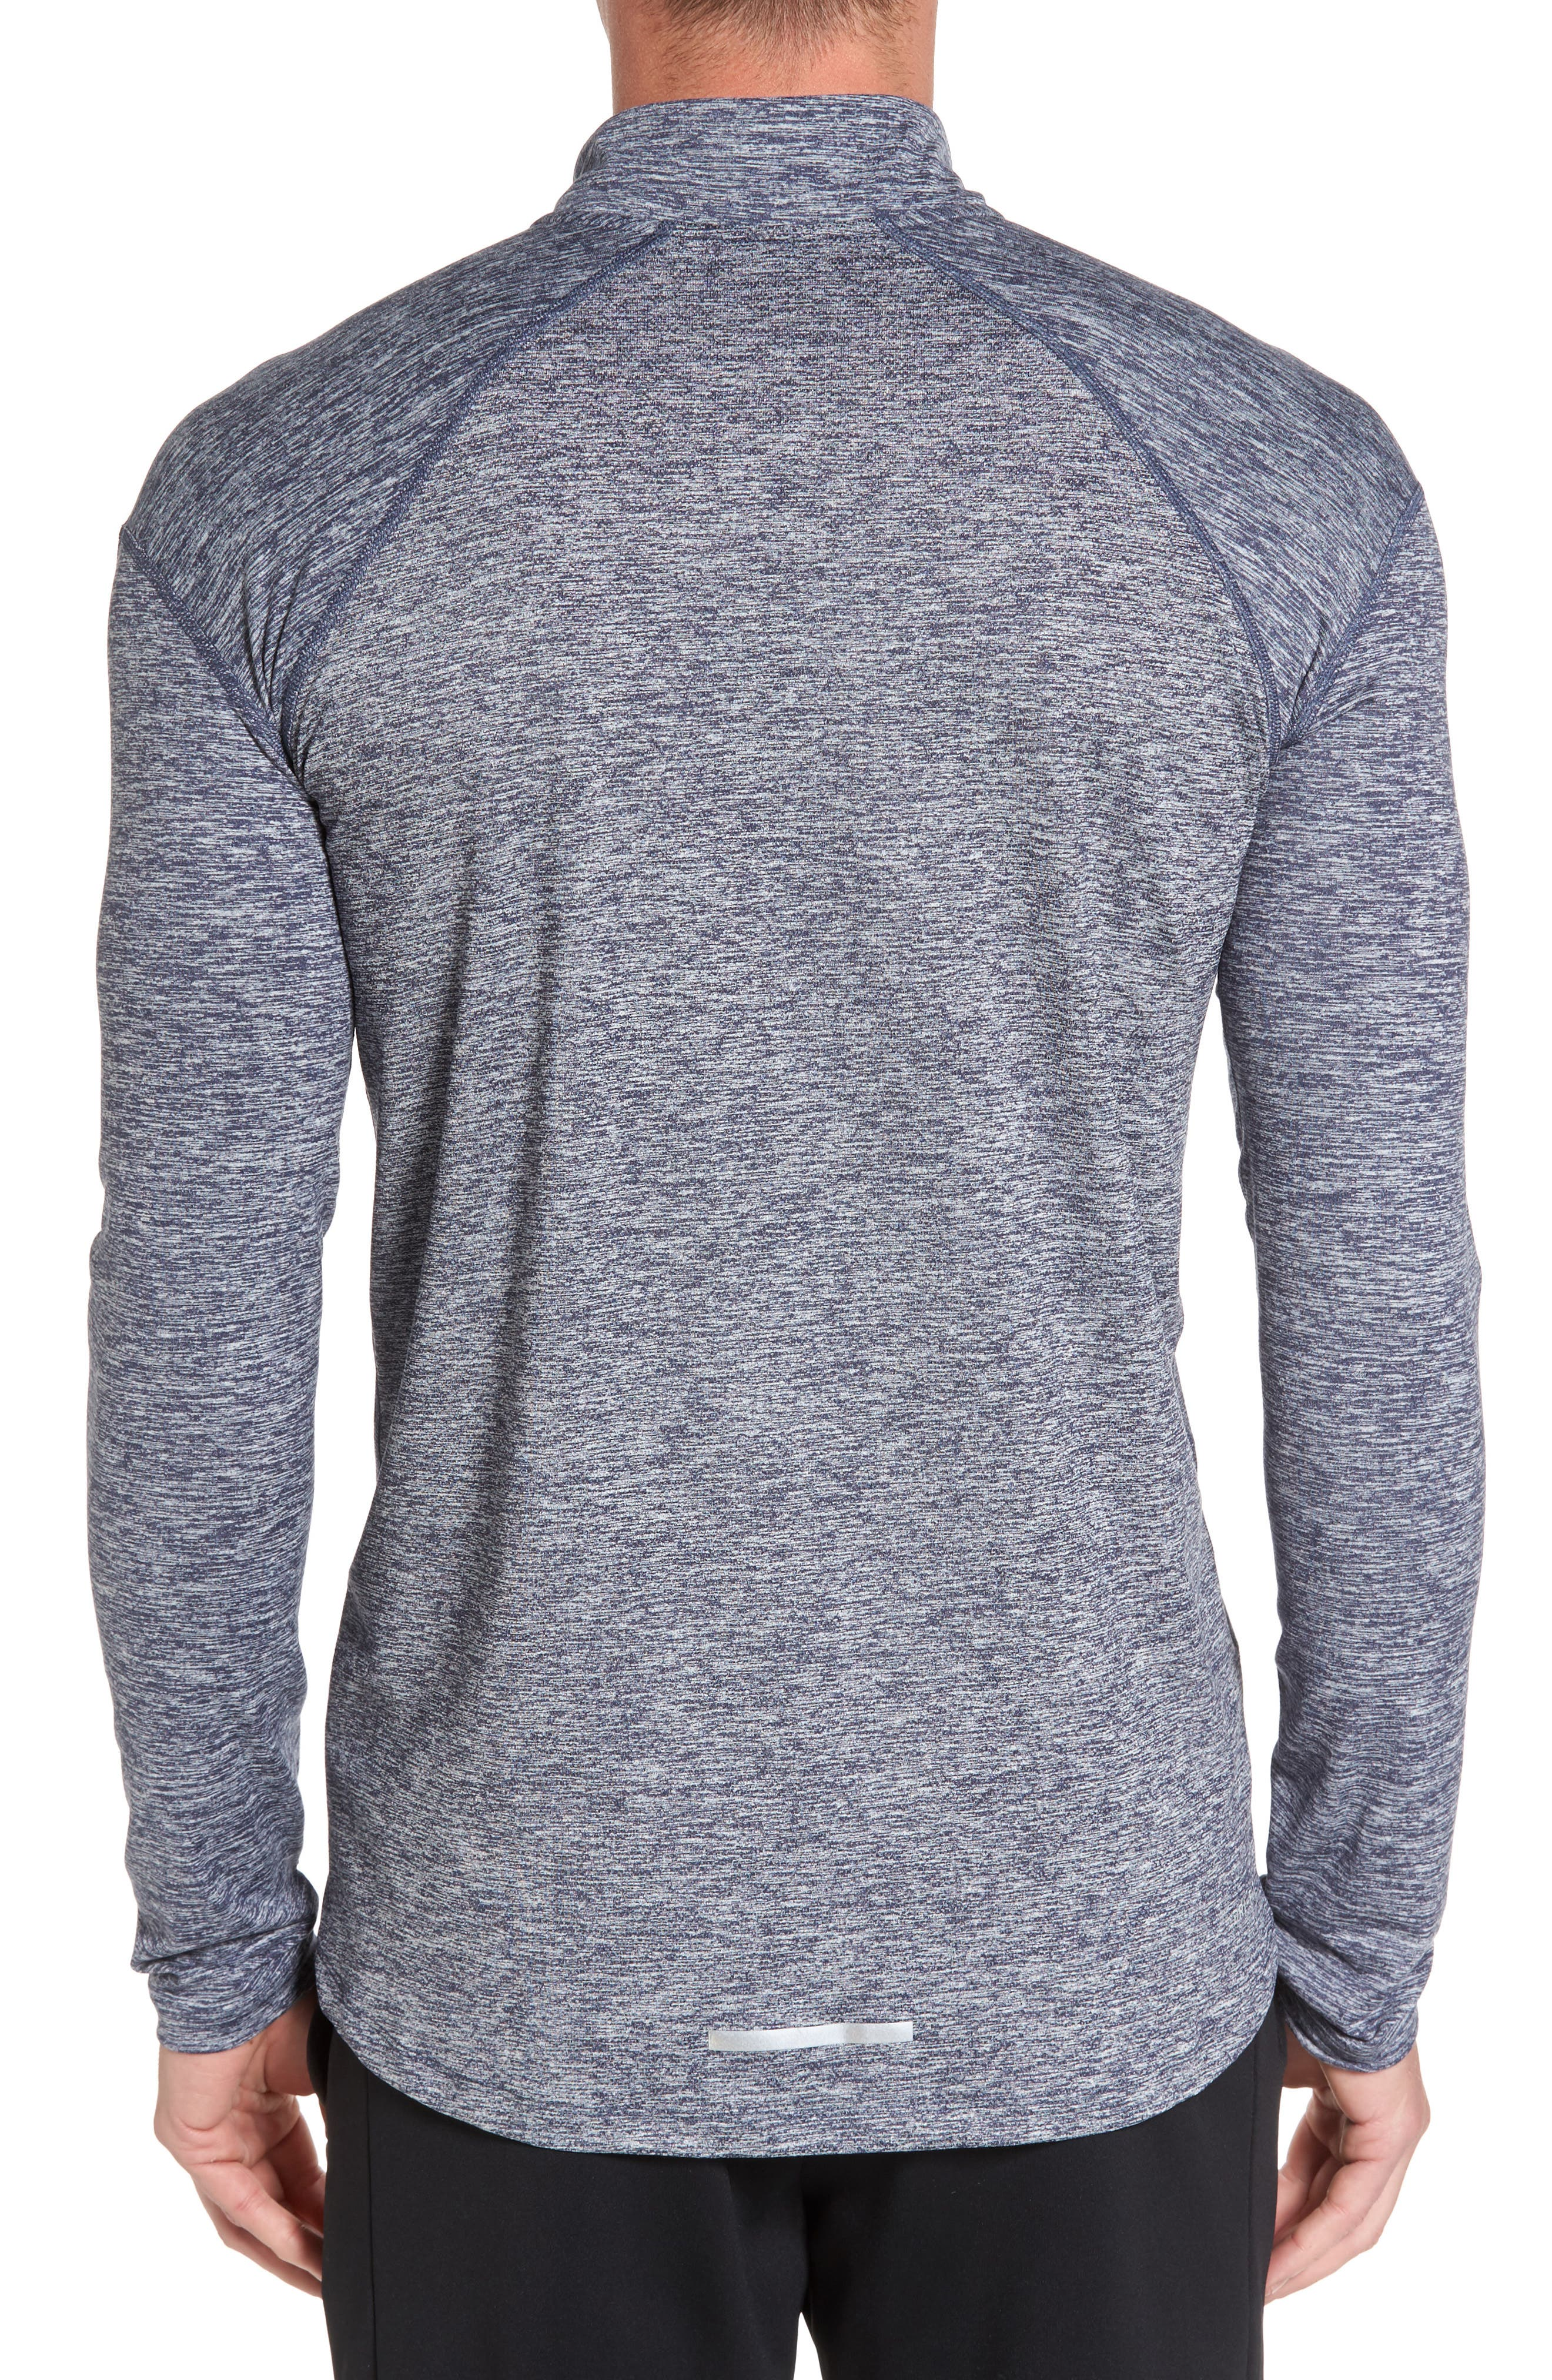 Dry Element Running Top,                             Alternate thumbnail 14, color,